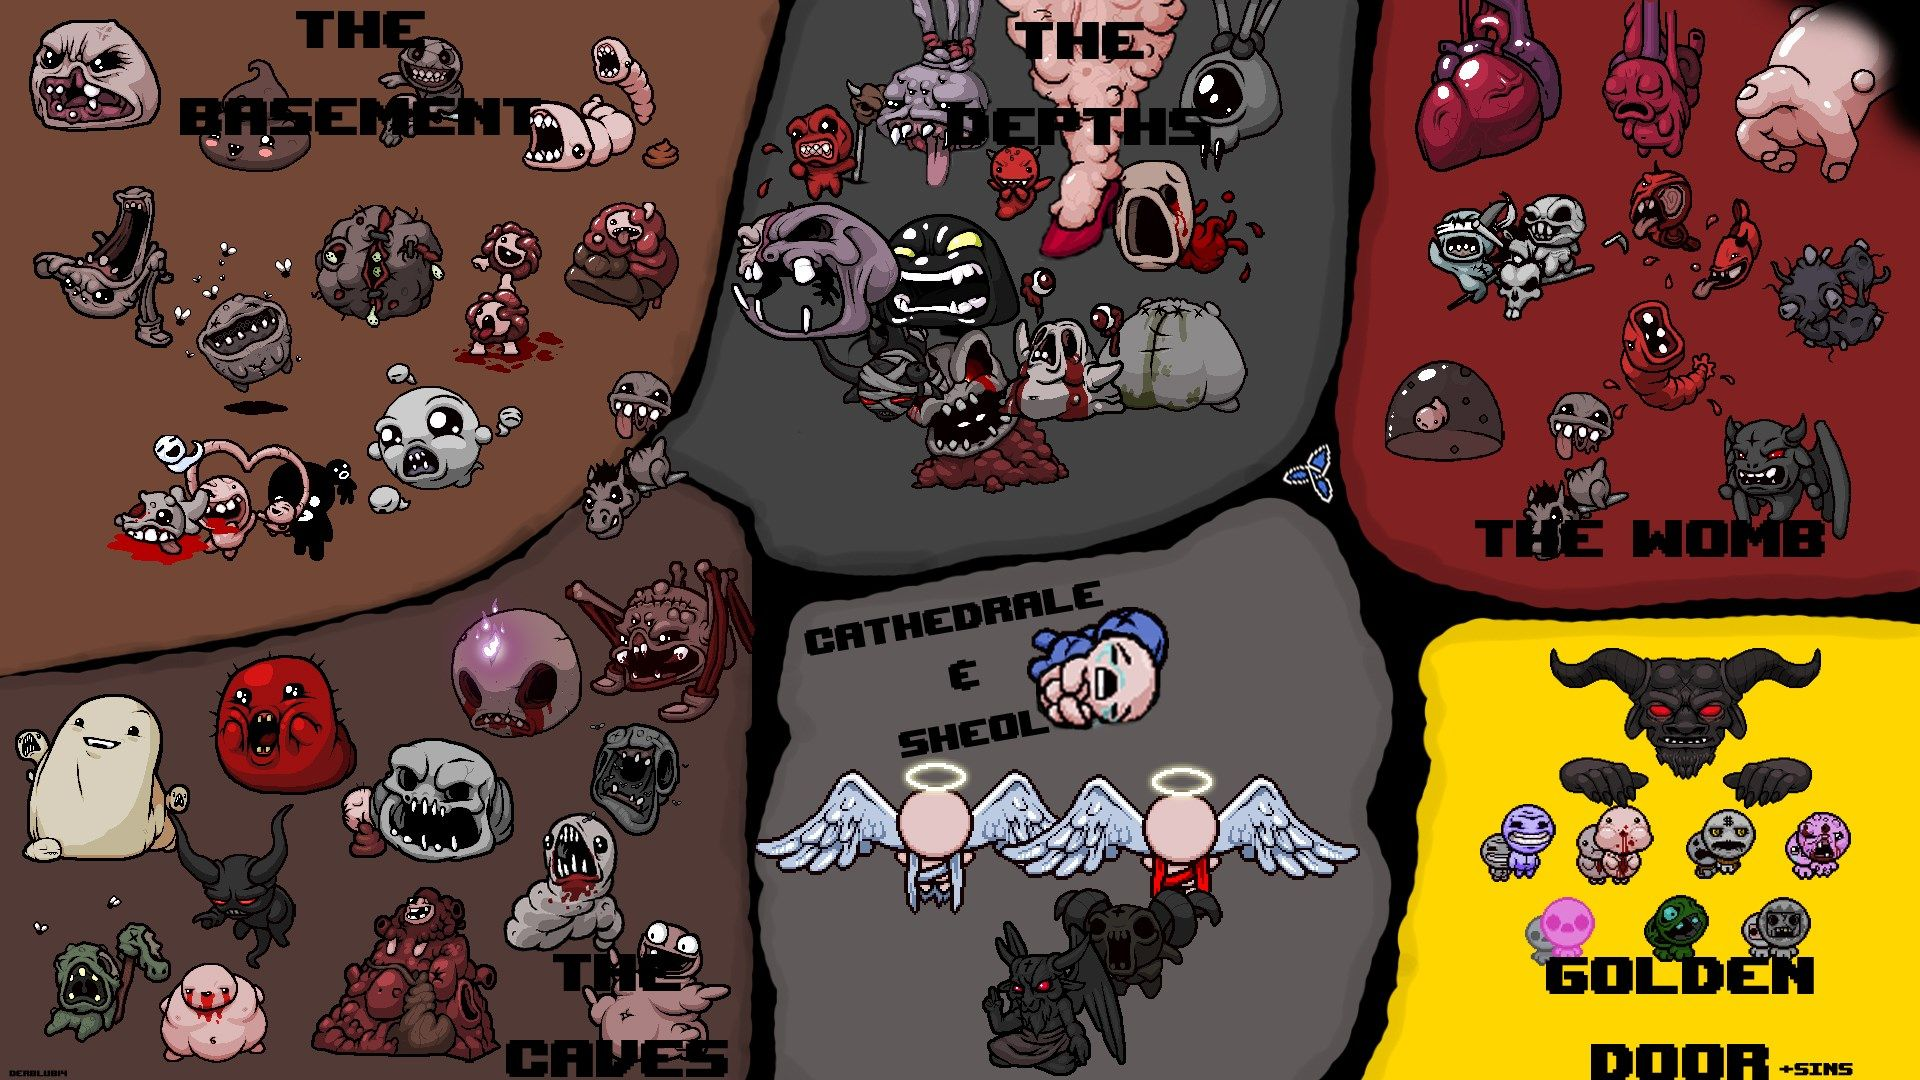 1920x1080 Px The Binding Of Isaac Rebirth Wallpaper By Dudley Bishop For Twd The Binding Of Isaac Isaac Binding